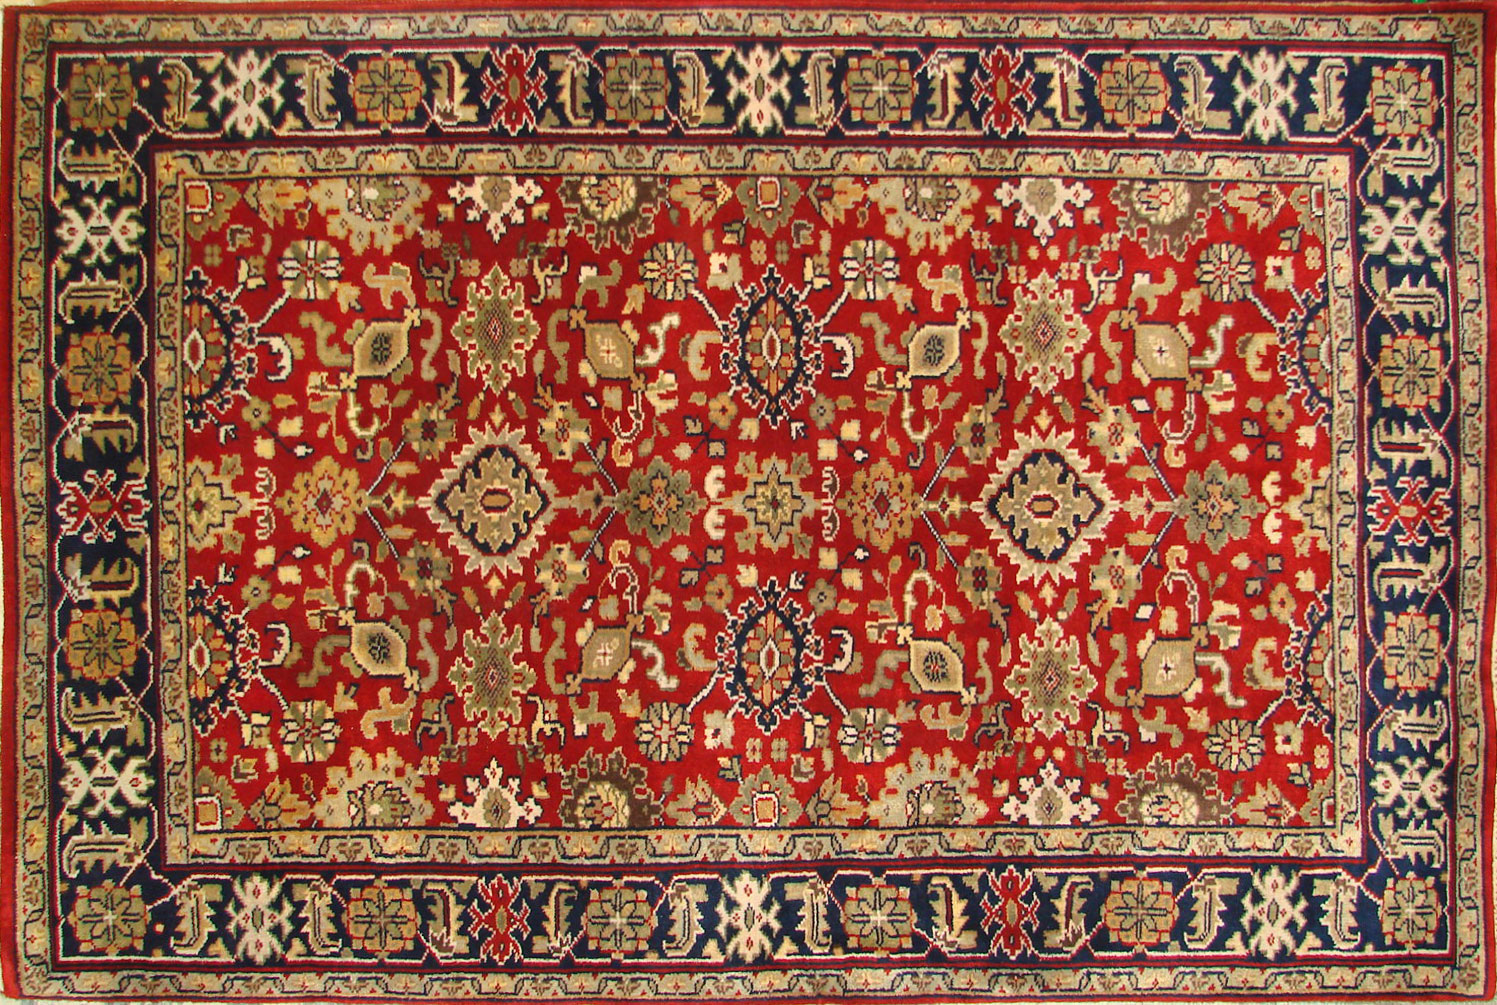 4x6 Traditional Hand Knotted Wool Area Rug - MR18550